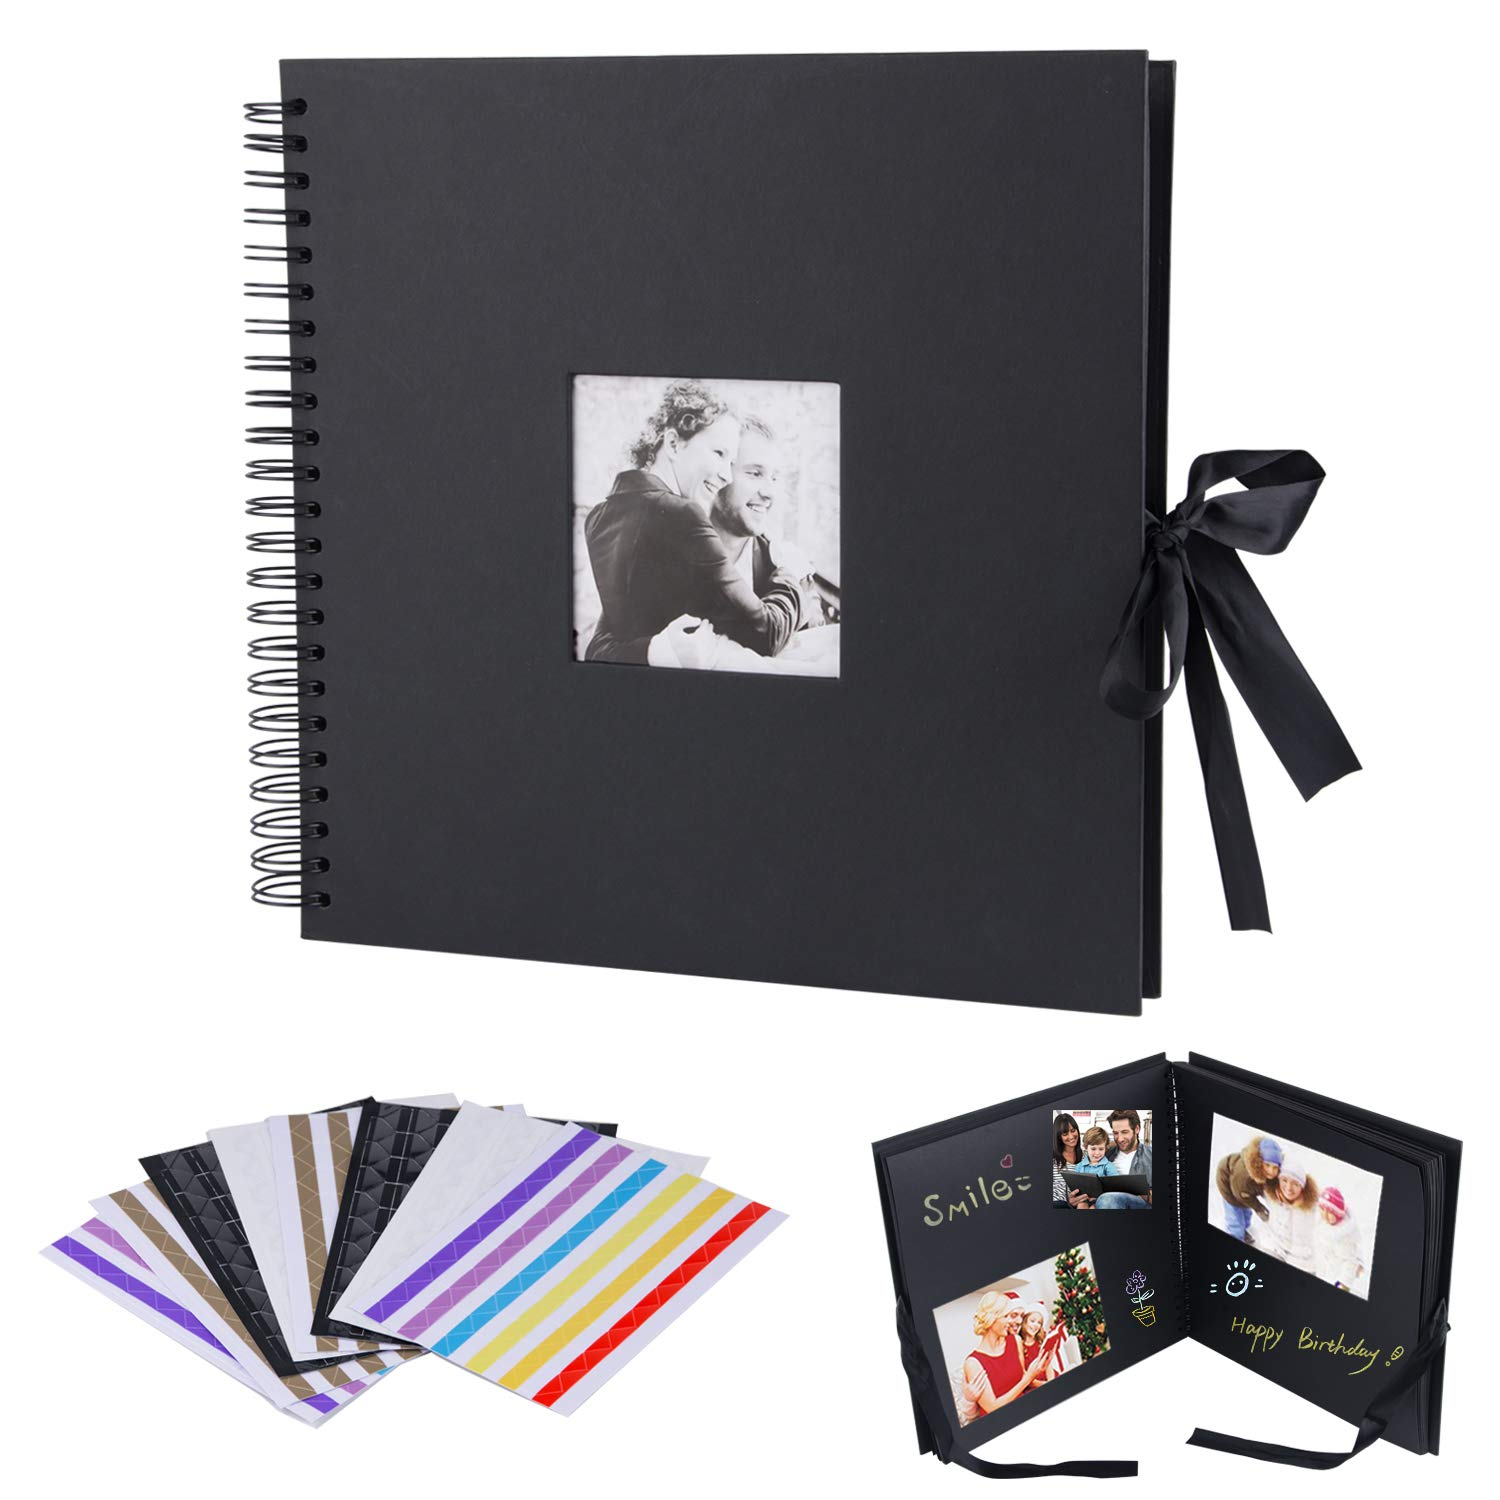 12x12 inch Scrapbook, Morfone DIY Photo Album with Cover Photo Pocket 80 Pages Wedding Guest Book Anniversary Baby Shower Travel Memory Book (Black, Photo Corners Included)